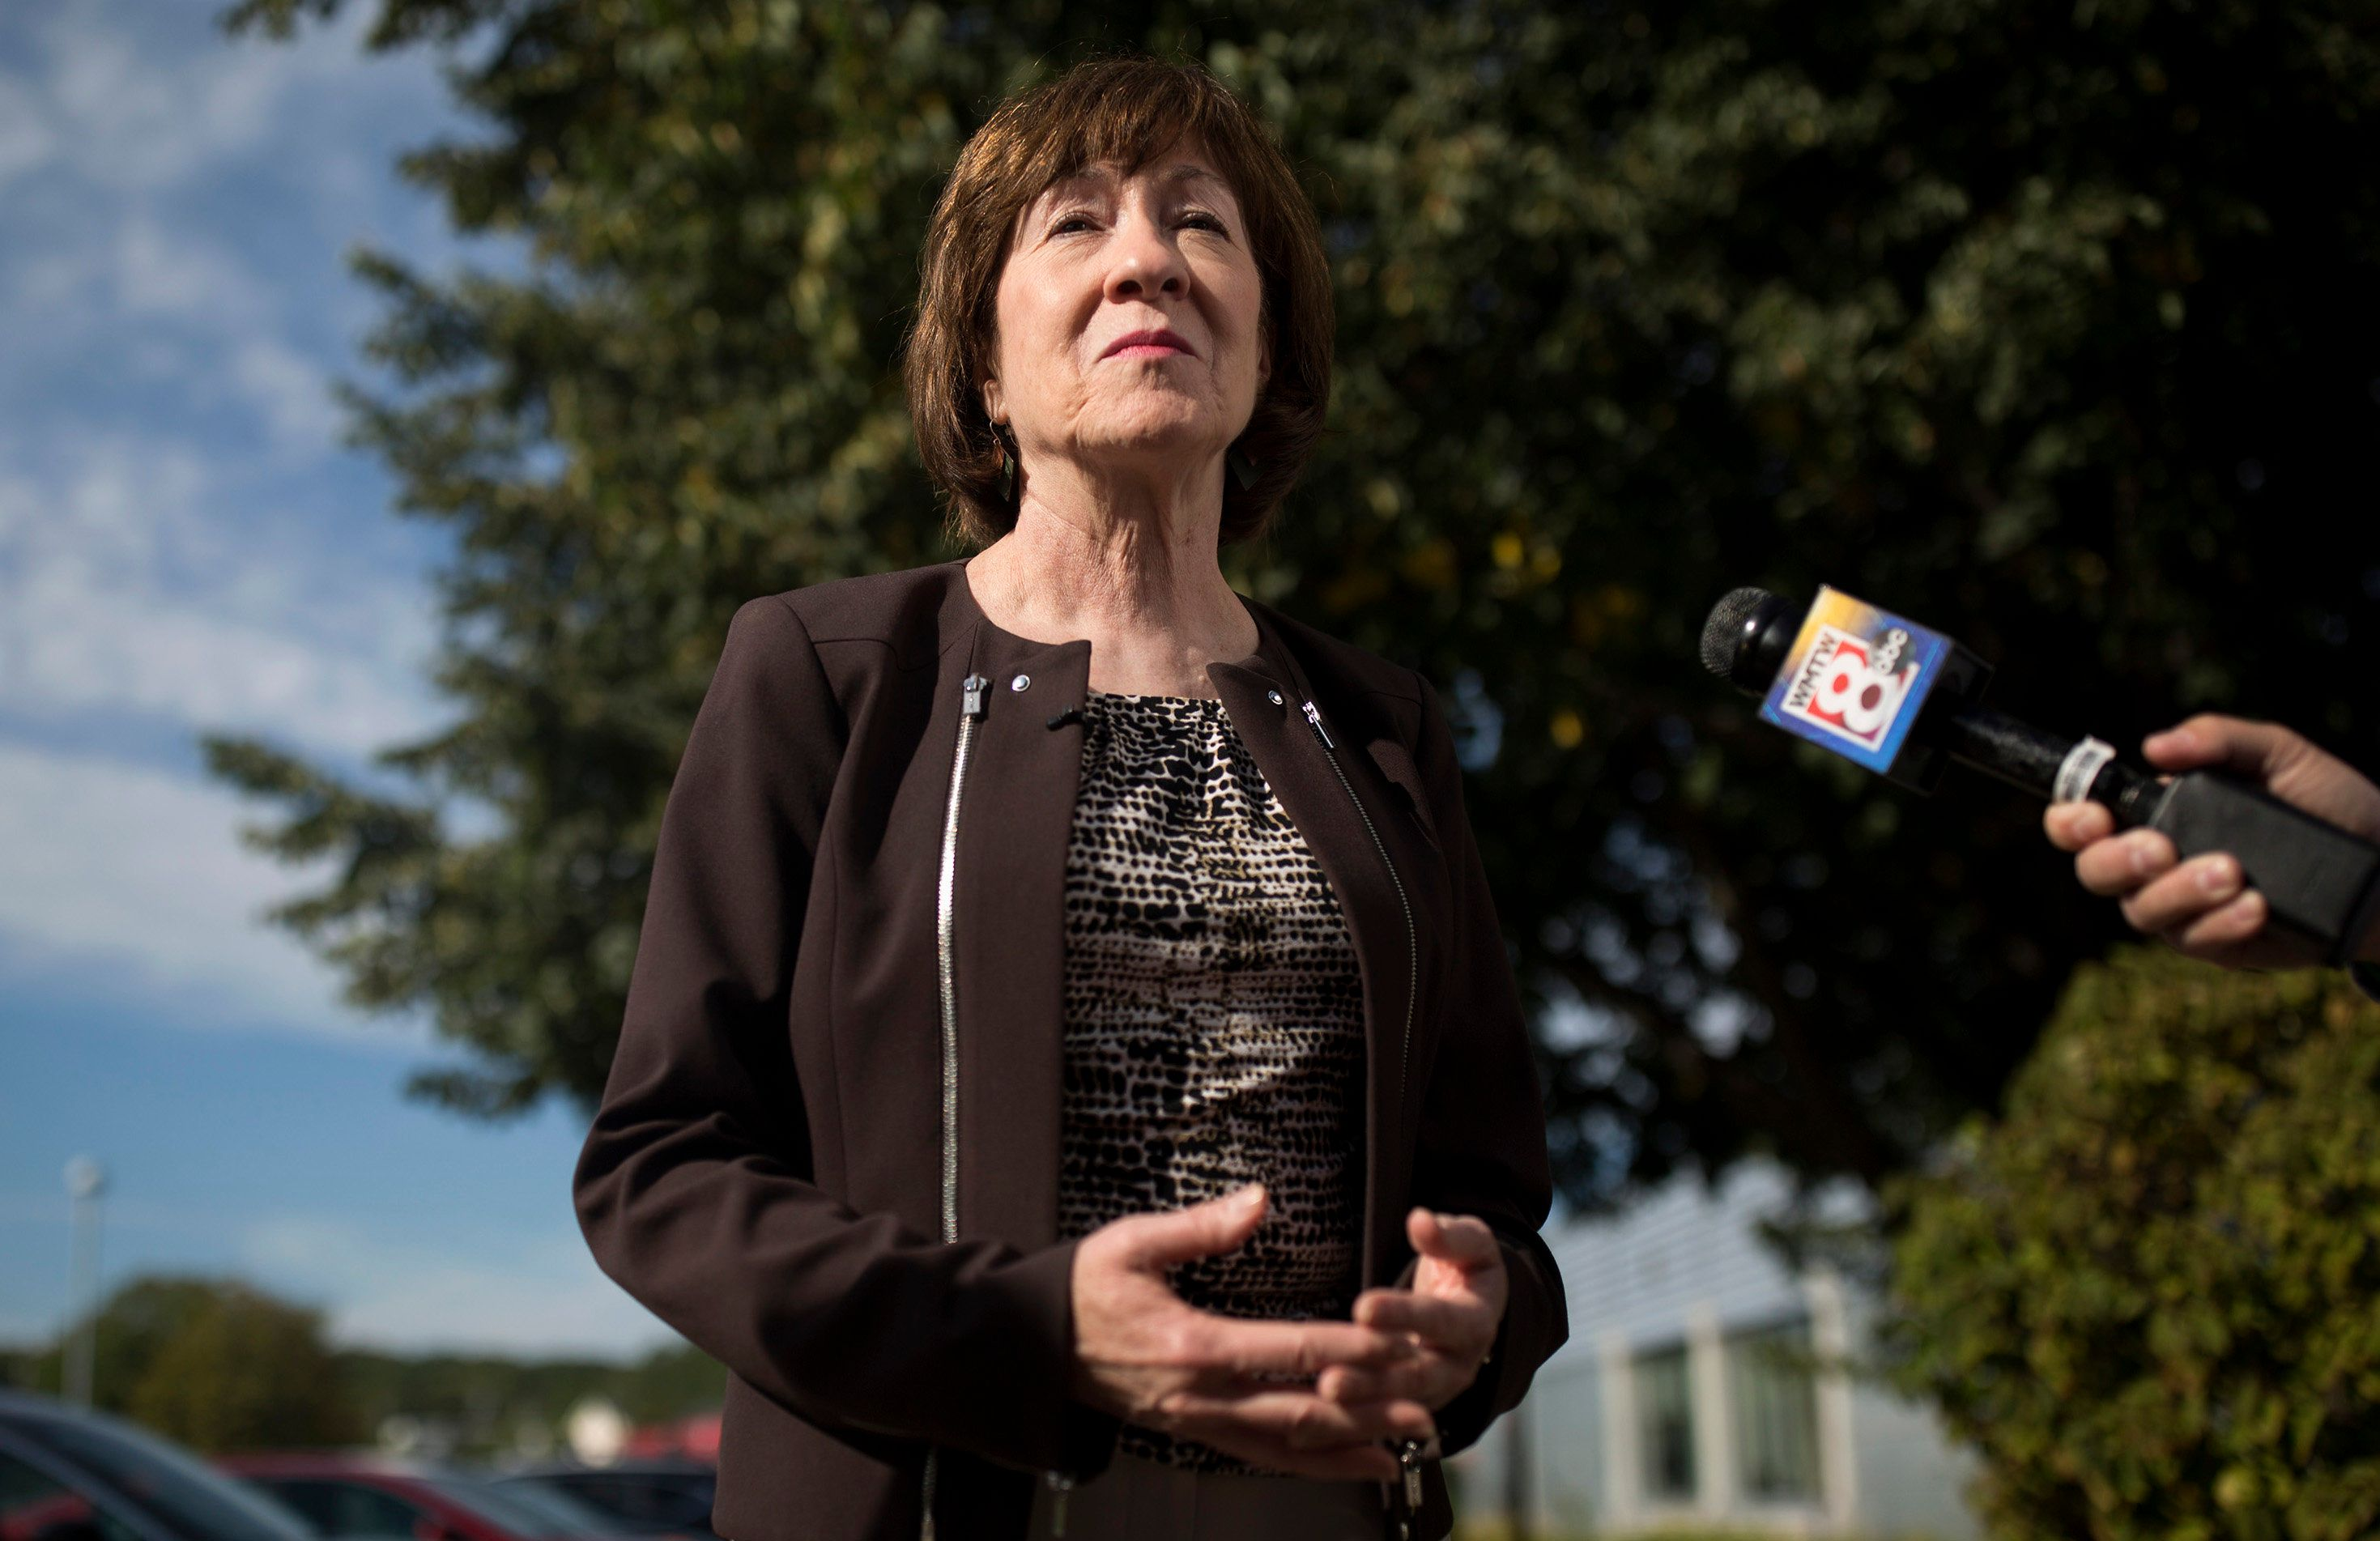 SCARBOROUGH, ME - SEPTEMBER 7: Sen. Susan Collins speaks with members of the press about the nomination of Brett Kavanaugh to the Supreme Court after a tour of the healthcare company Abbott Laboratories. (Staff photo by Brianna Soukup/Portland Press Herald via Getty Images)